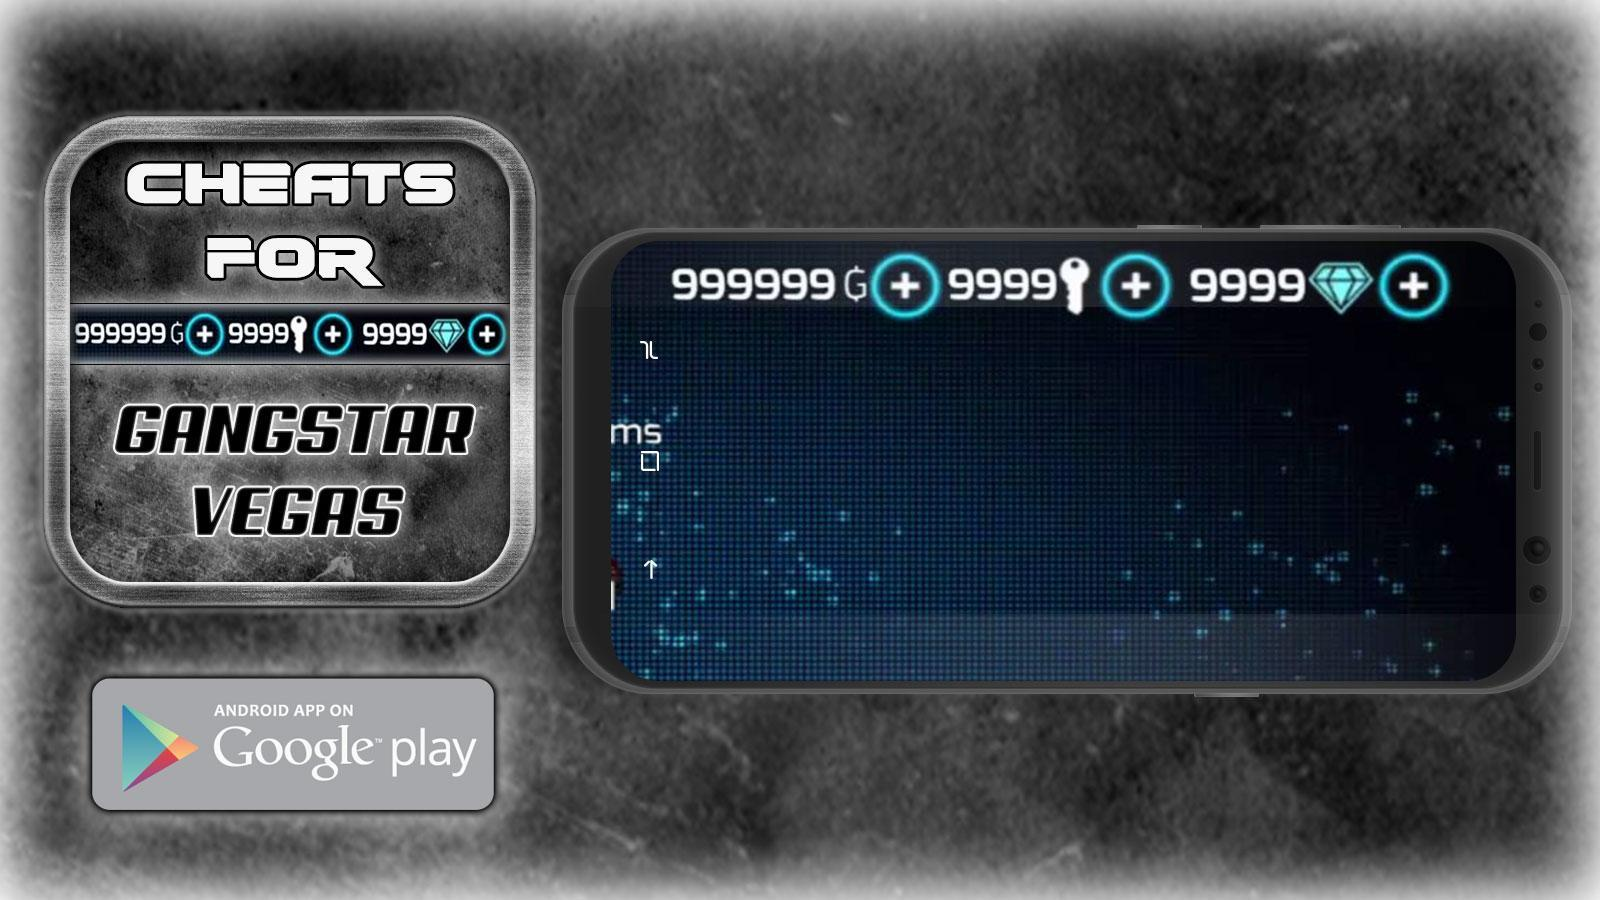 Cheats For Gangstar Vegas App For - Prank. for Android - APK Download